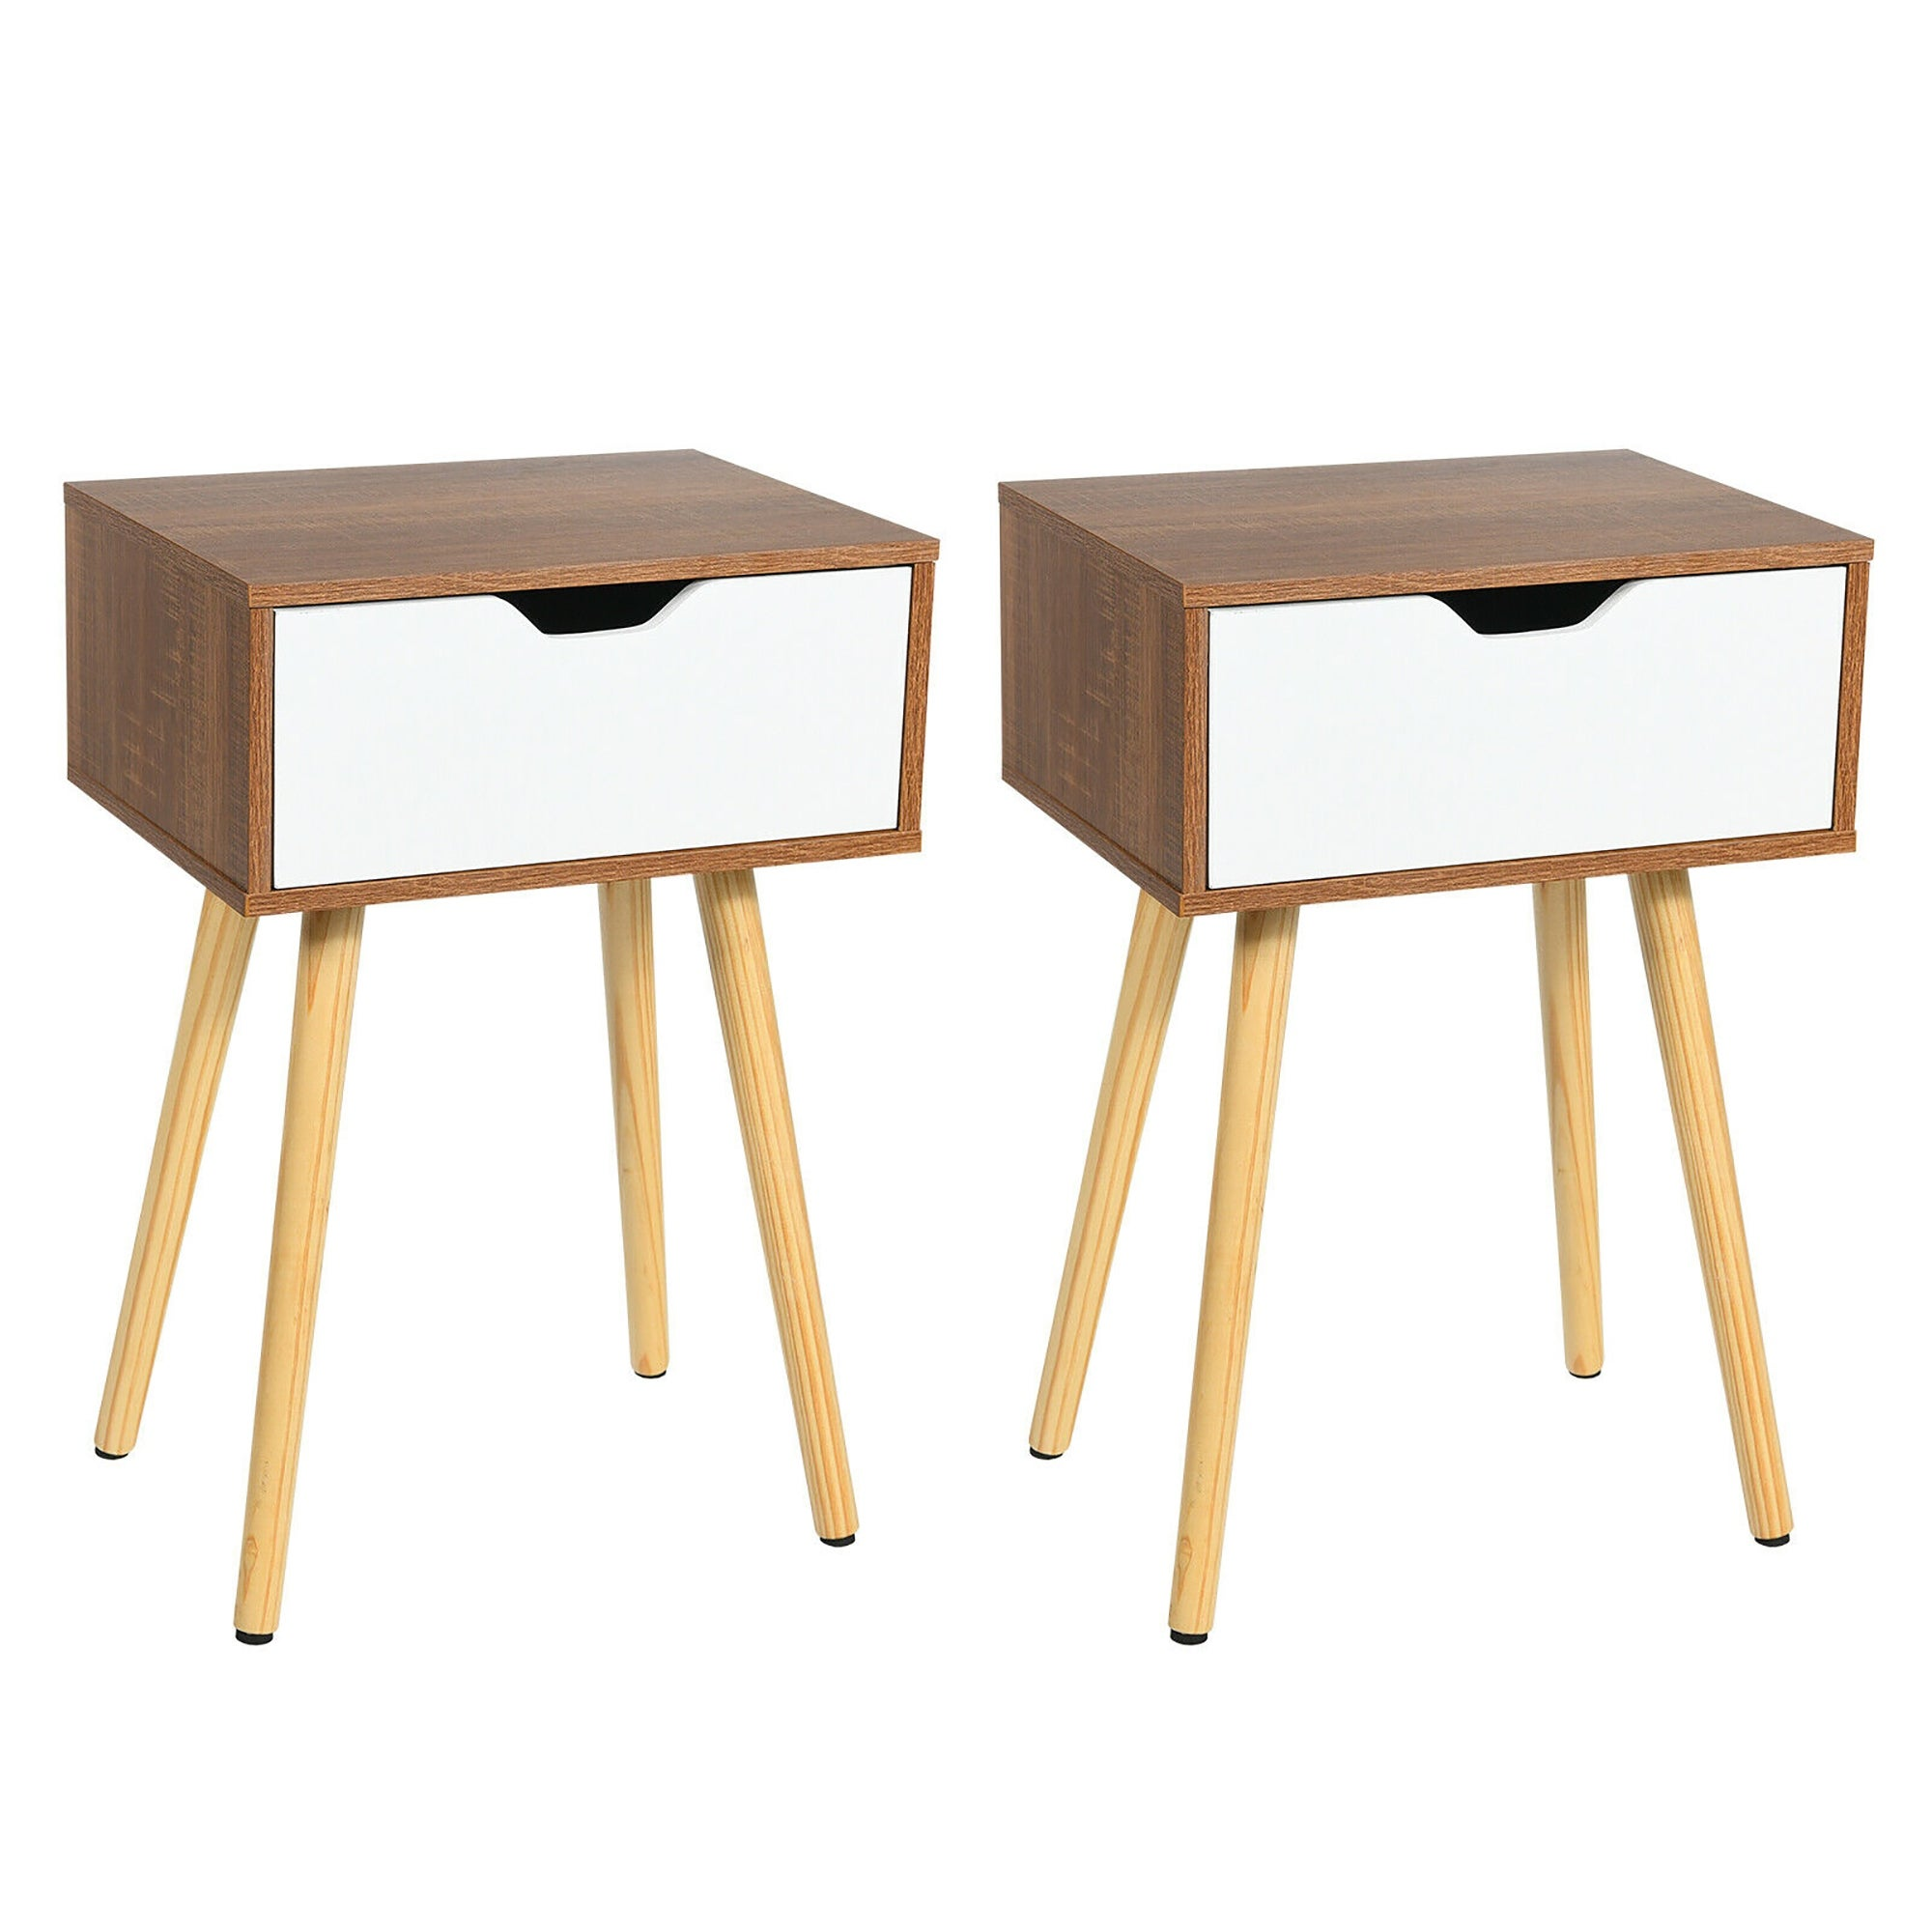 Easy Assembly【US Fast Shipment】 Bedroom Night Stand Bedside Table Coffee Table Bedroom Furniture Nightstand with 2 Drawer for Living Room Office End Table Storage Cabinet Wild Entryway